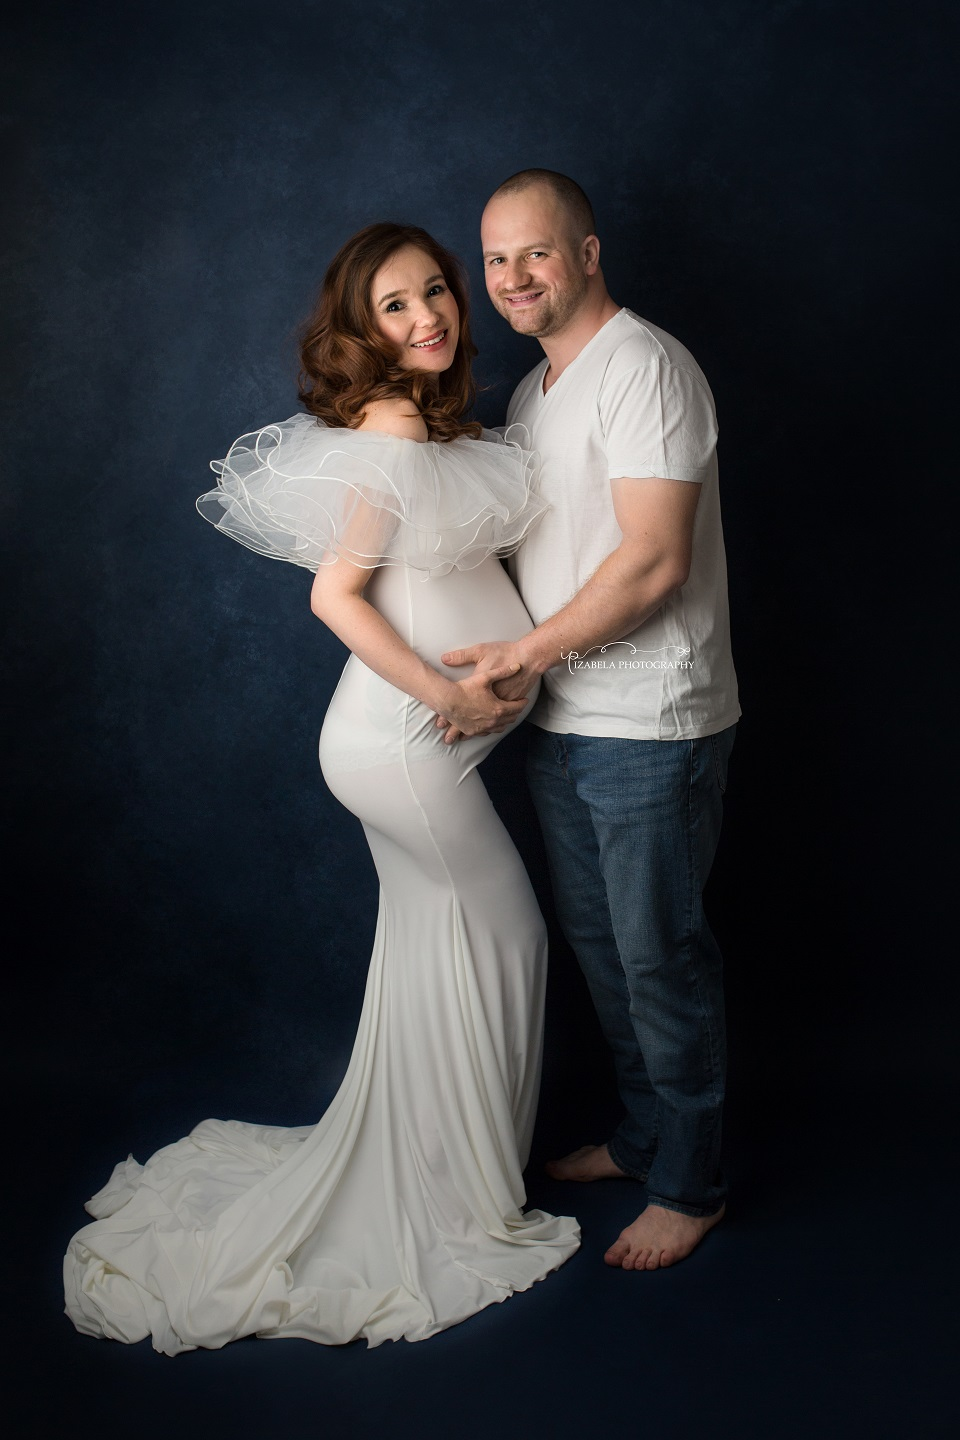 maternity photos in Milton Keyens